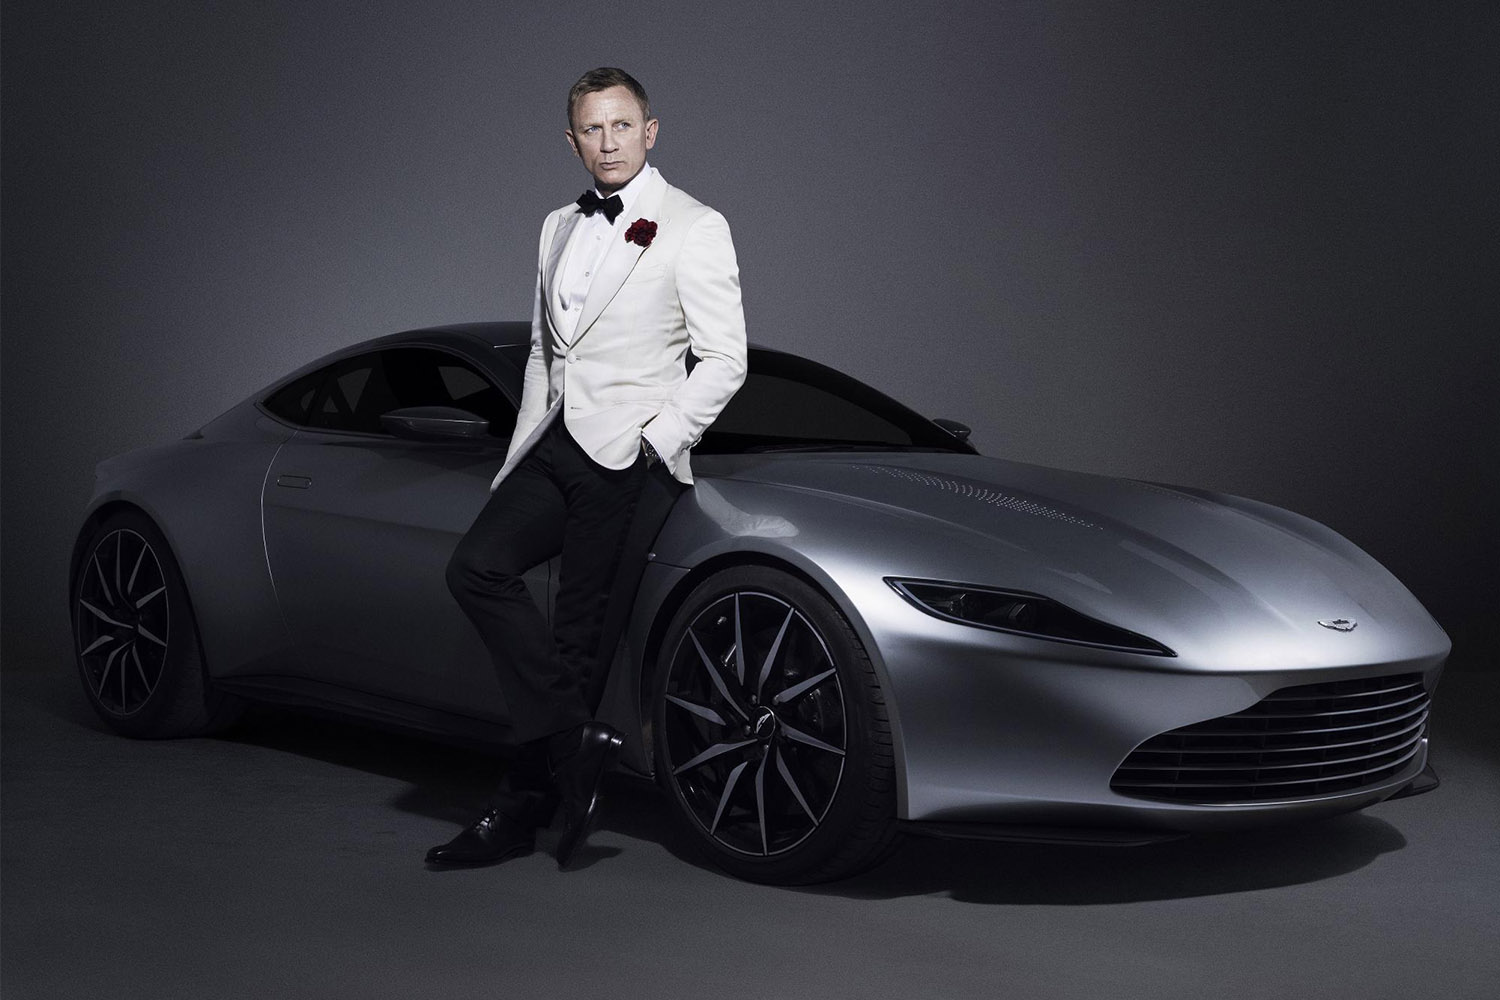 Christie's James Bond Spectre Auction - Aston Martin DB10 for sale 10 of 10